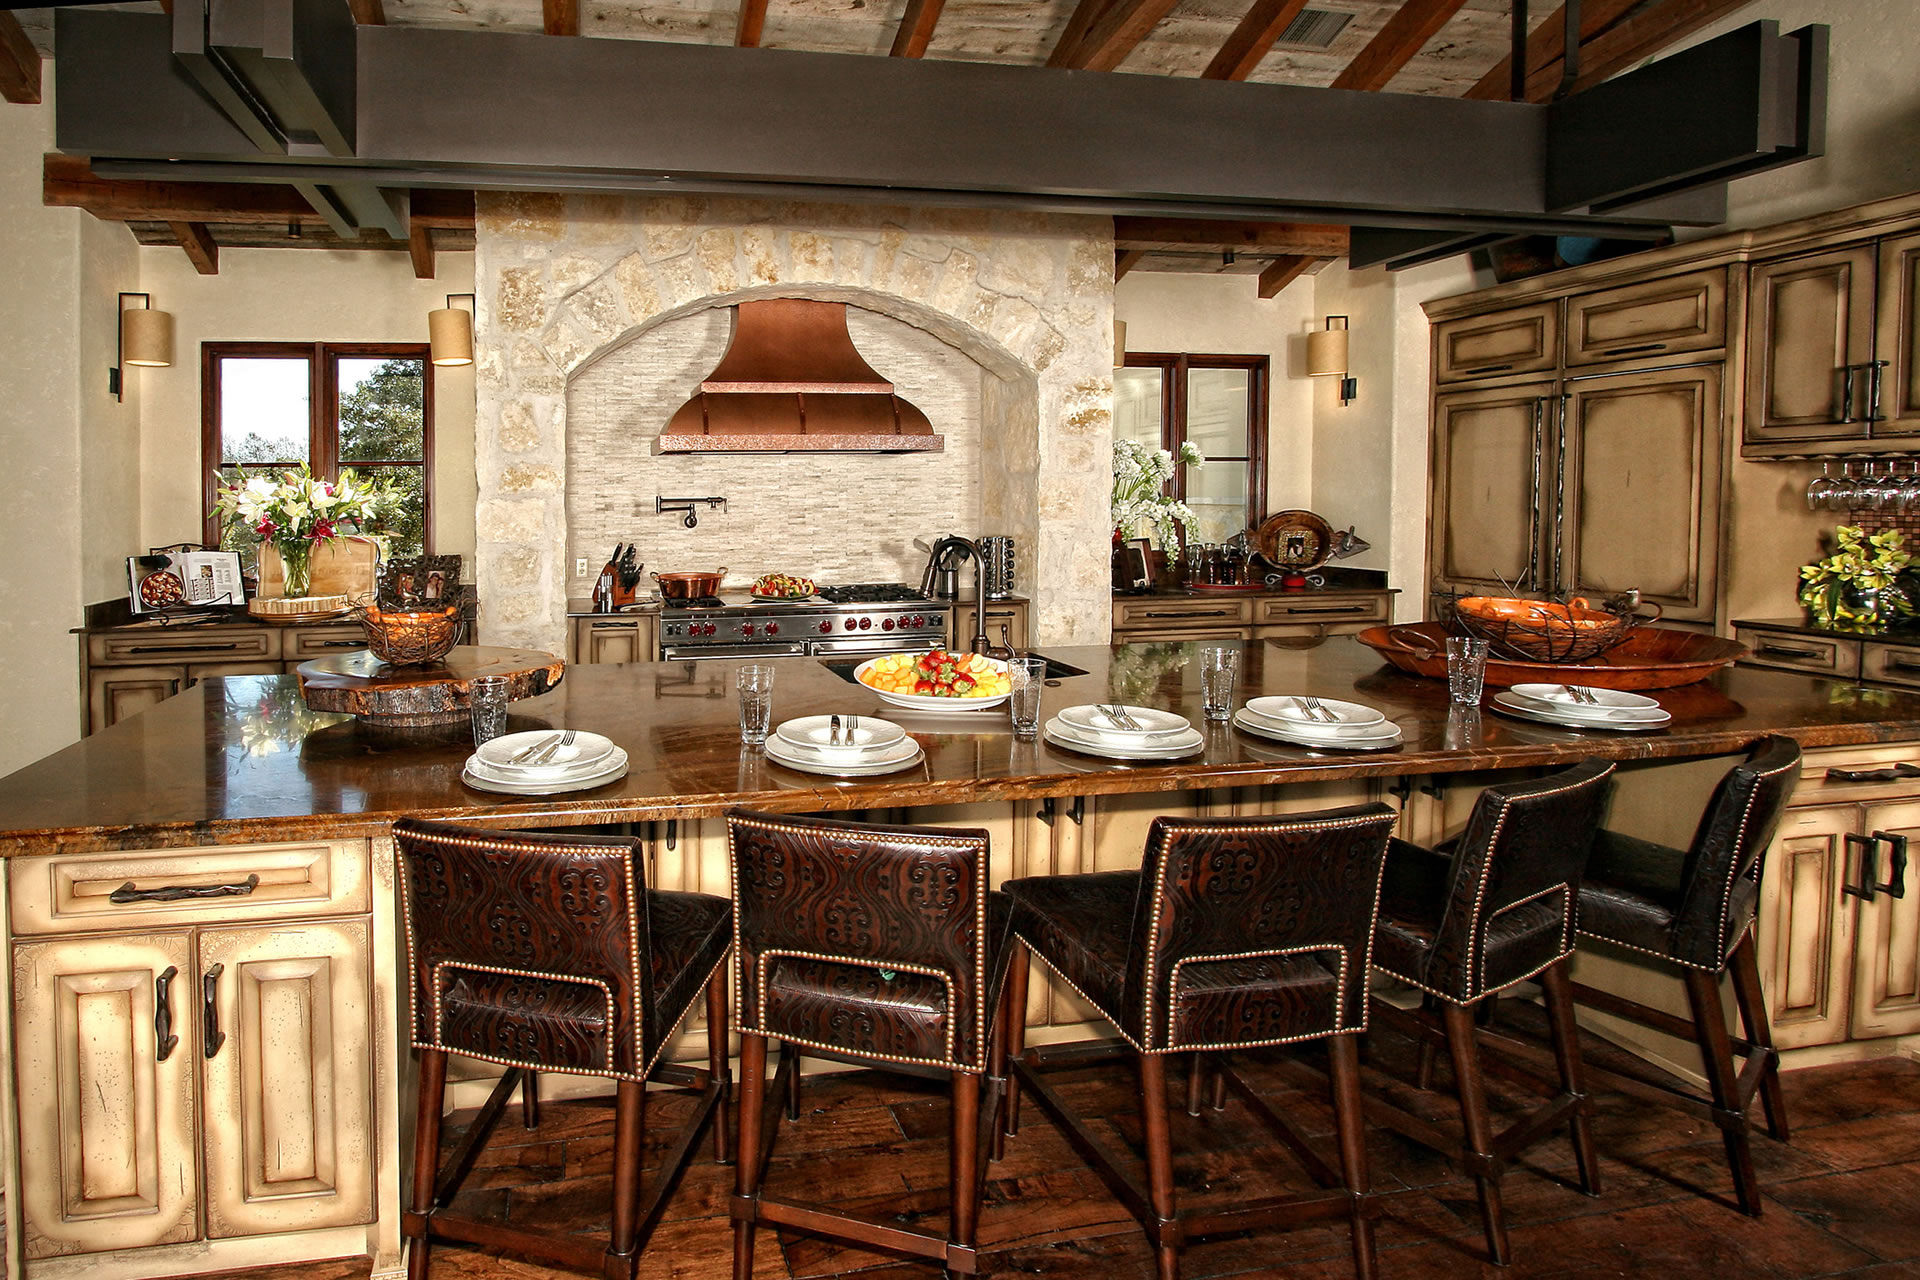 Rustic Beauty For Your Kitchen - Kitchen Design Ideas ...